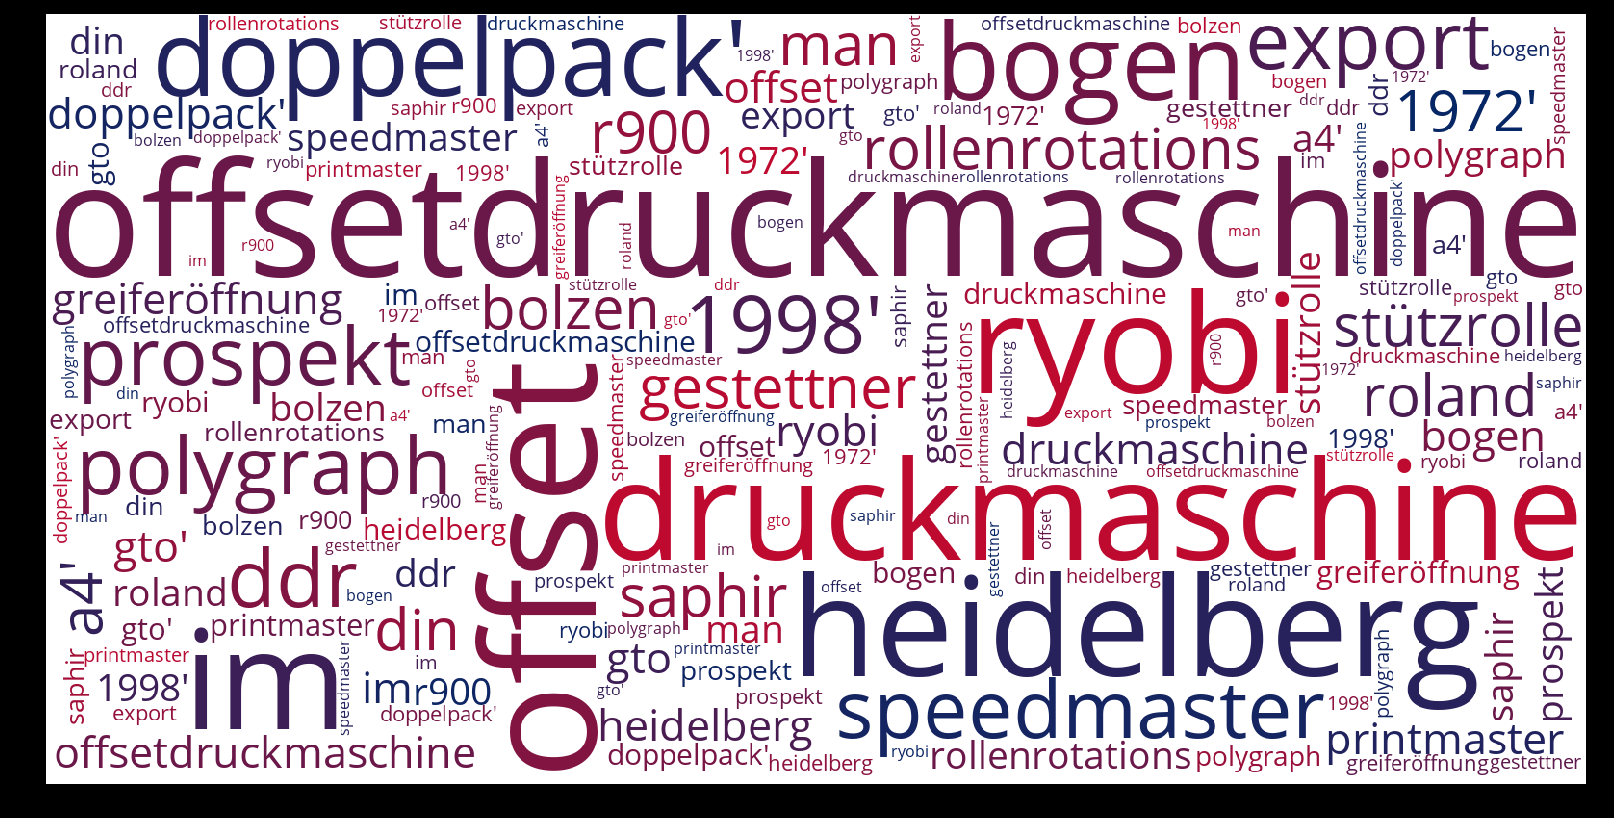 Offsetdruckmaschine-wordcloud